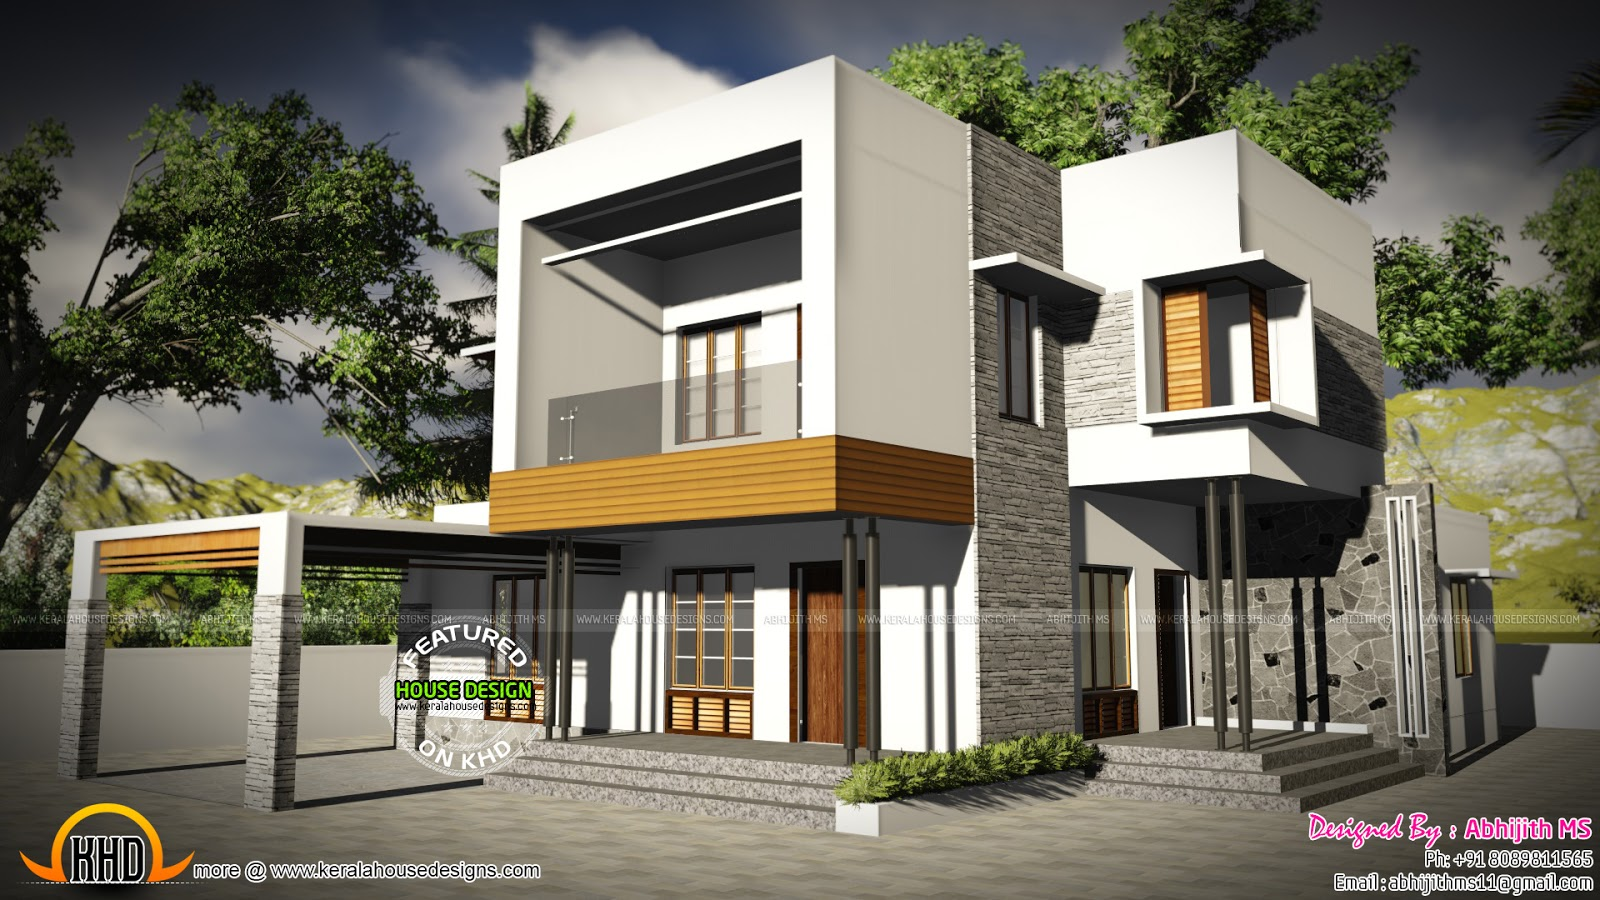 Good 3-BED ROOM CONTEMPORARY HOME Part - 10: 3 Bedroom Contemporary Home By Abhijith MS